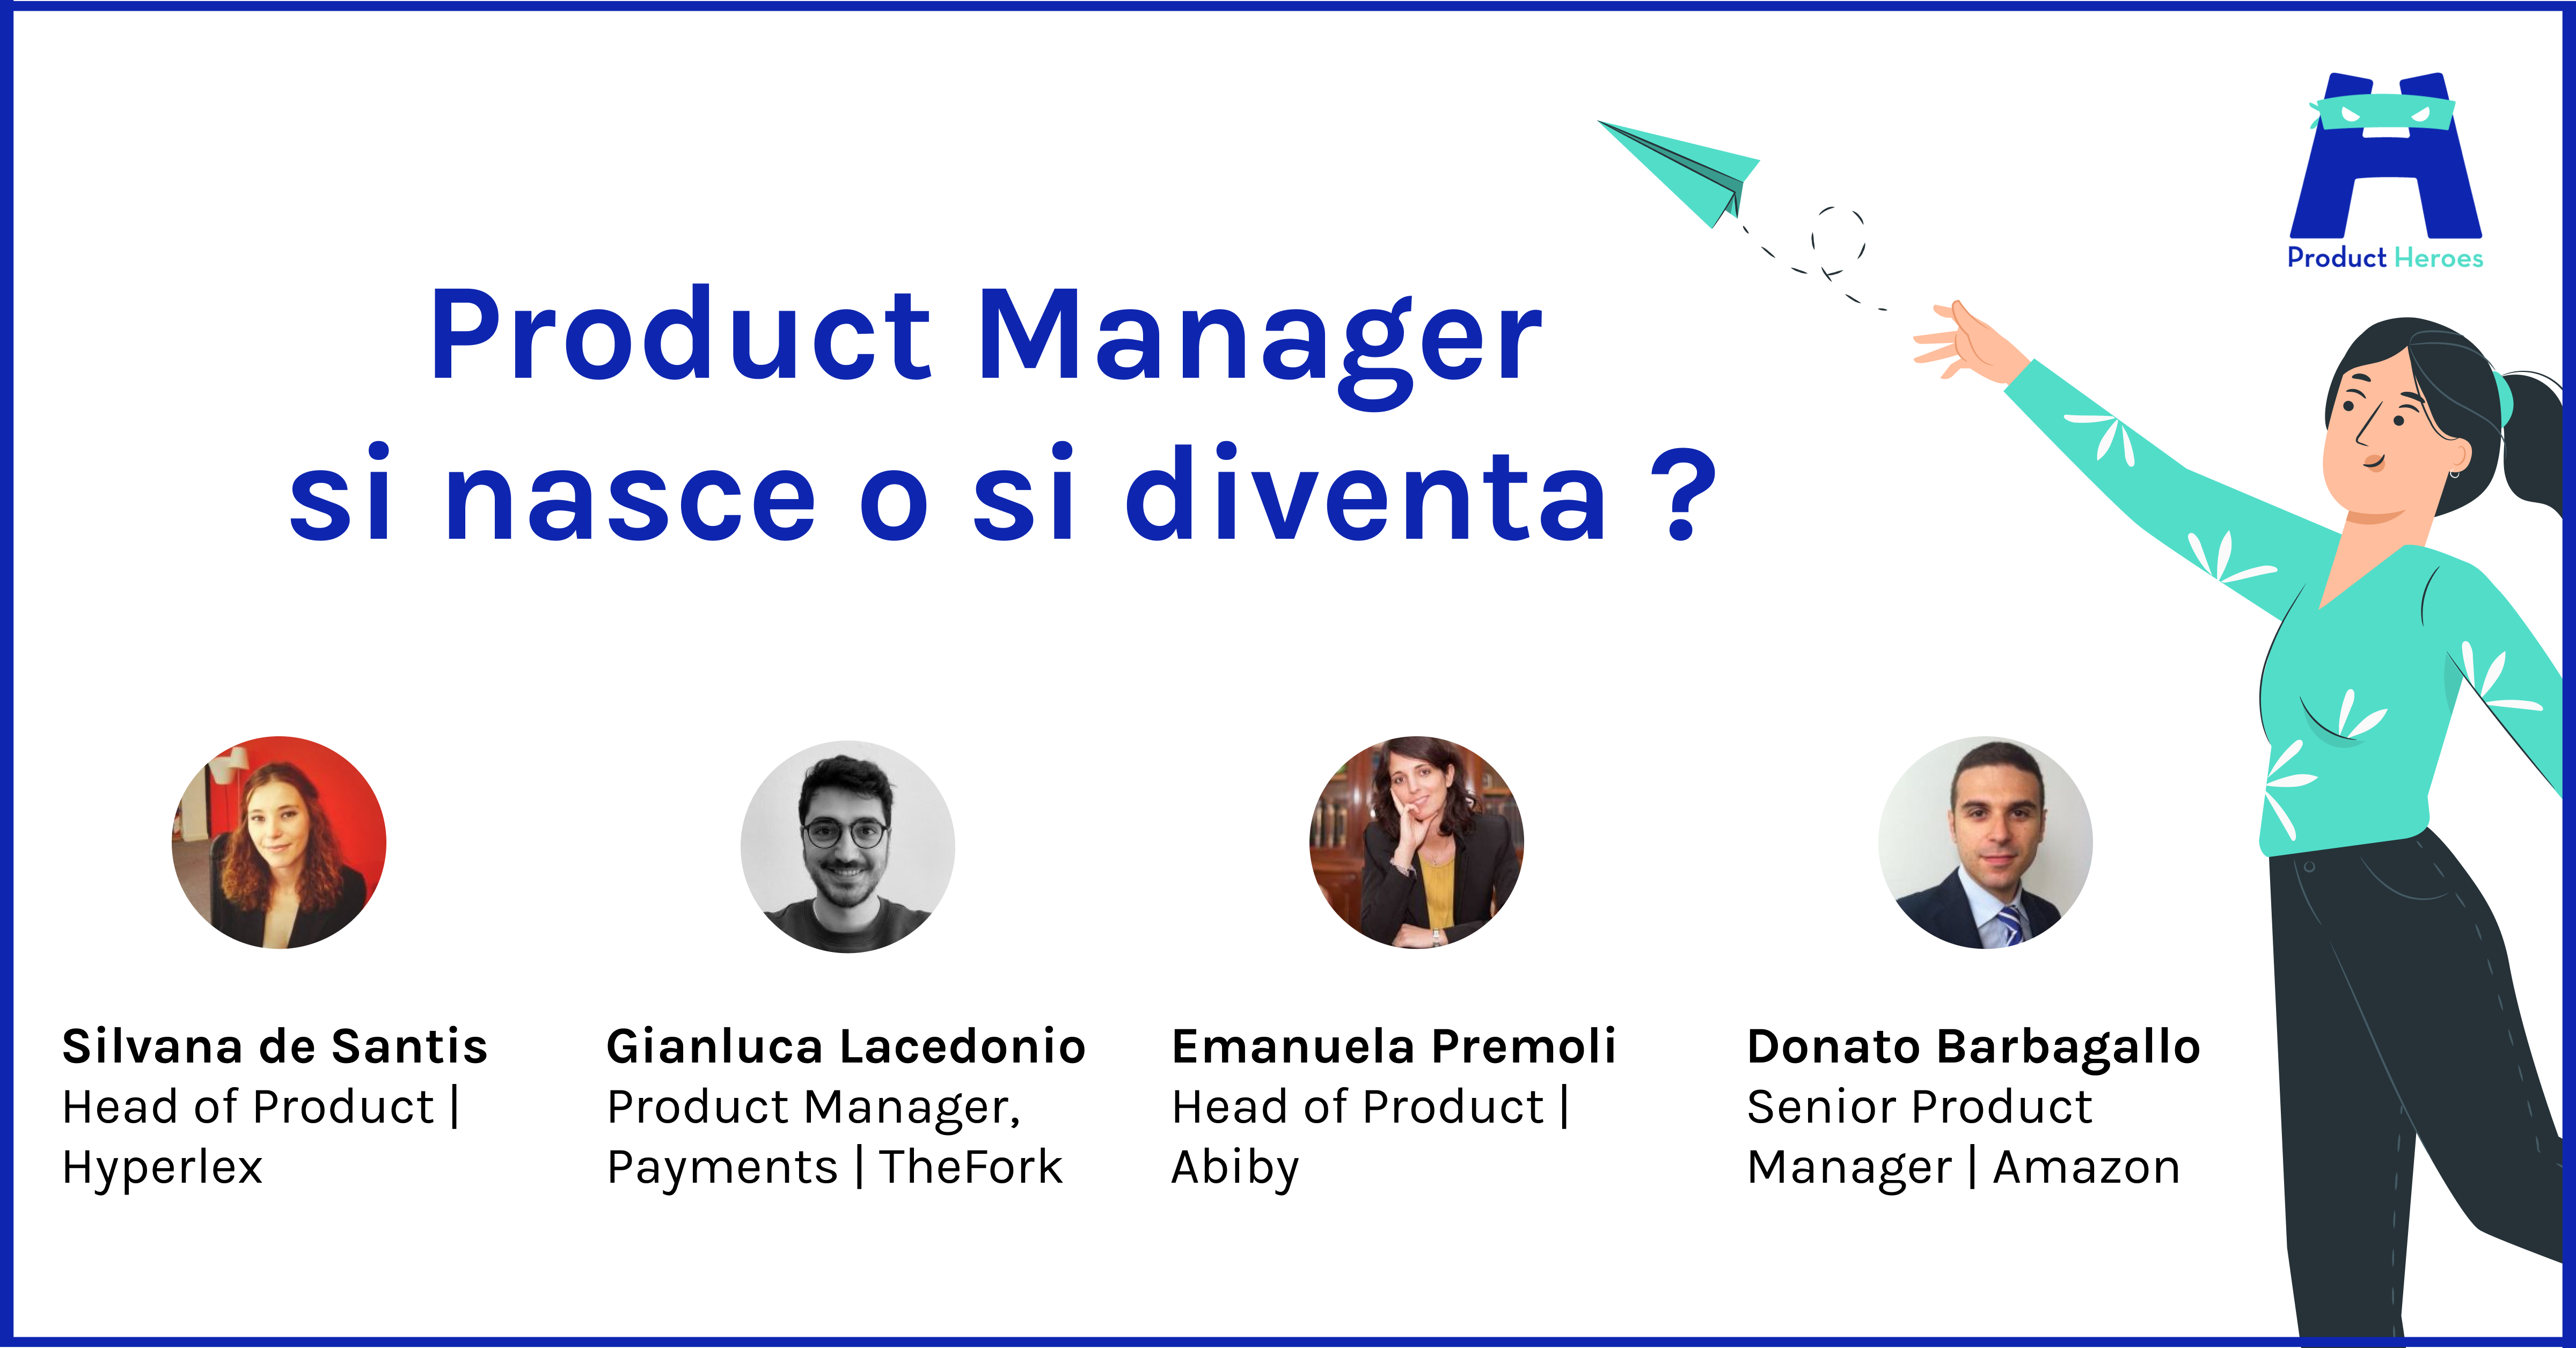 Product Manager si nasce o si diventa?